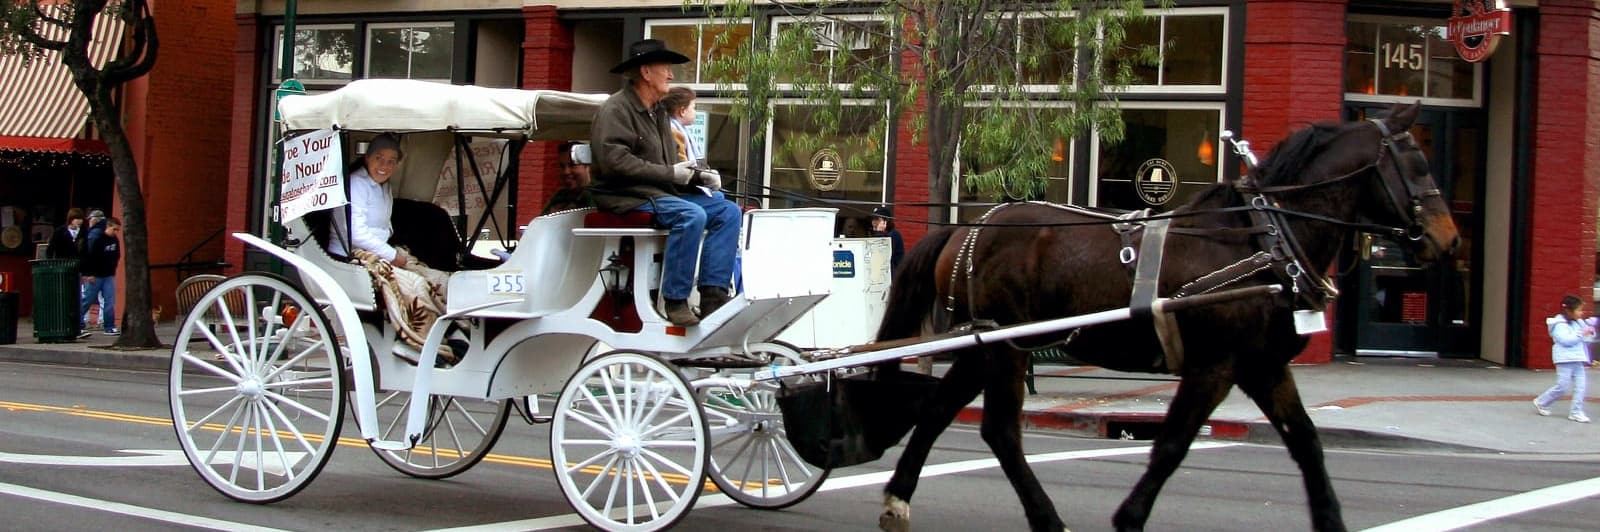 carriage-ride-w1600.jpg